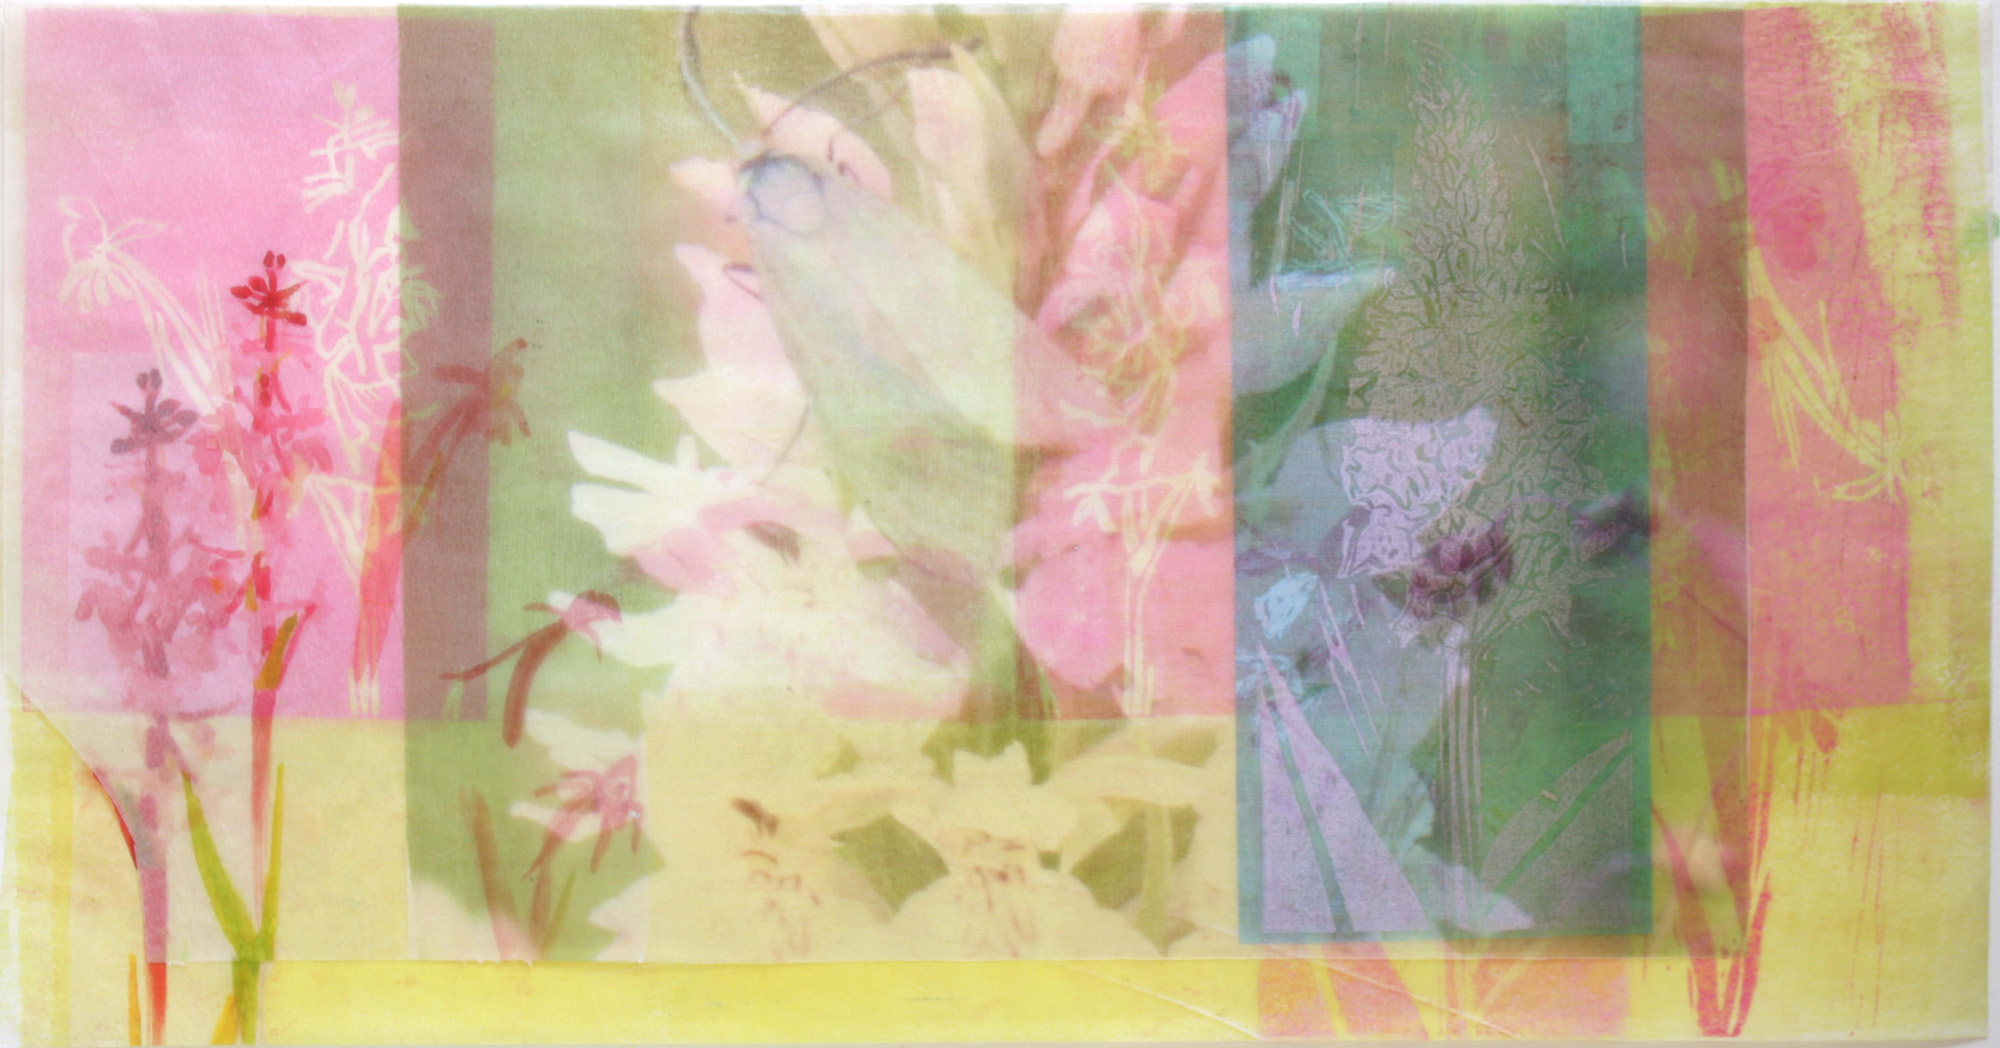 Common Spotted Orchid with Forester Moth and Fragrant Orchid, mixed media 250mm x 450mm